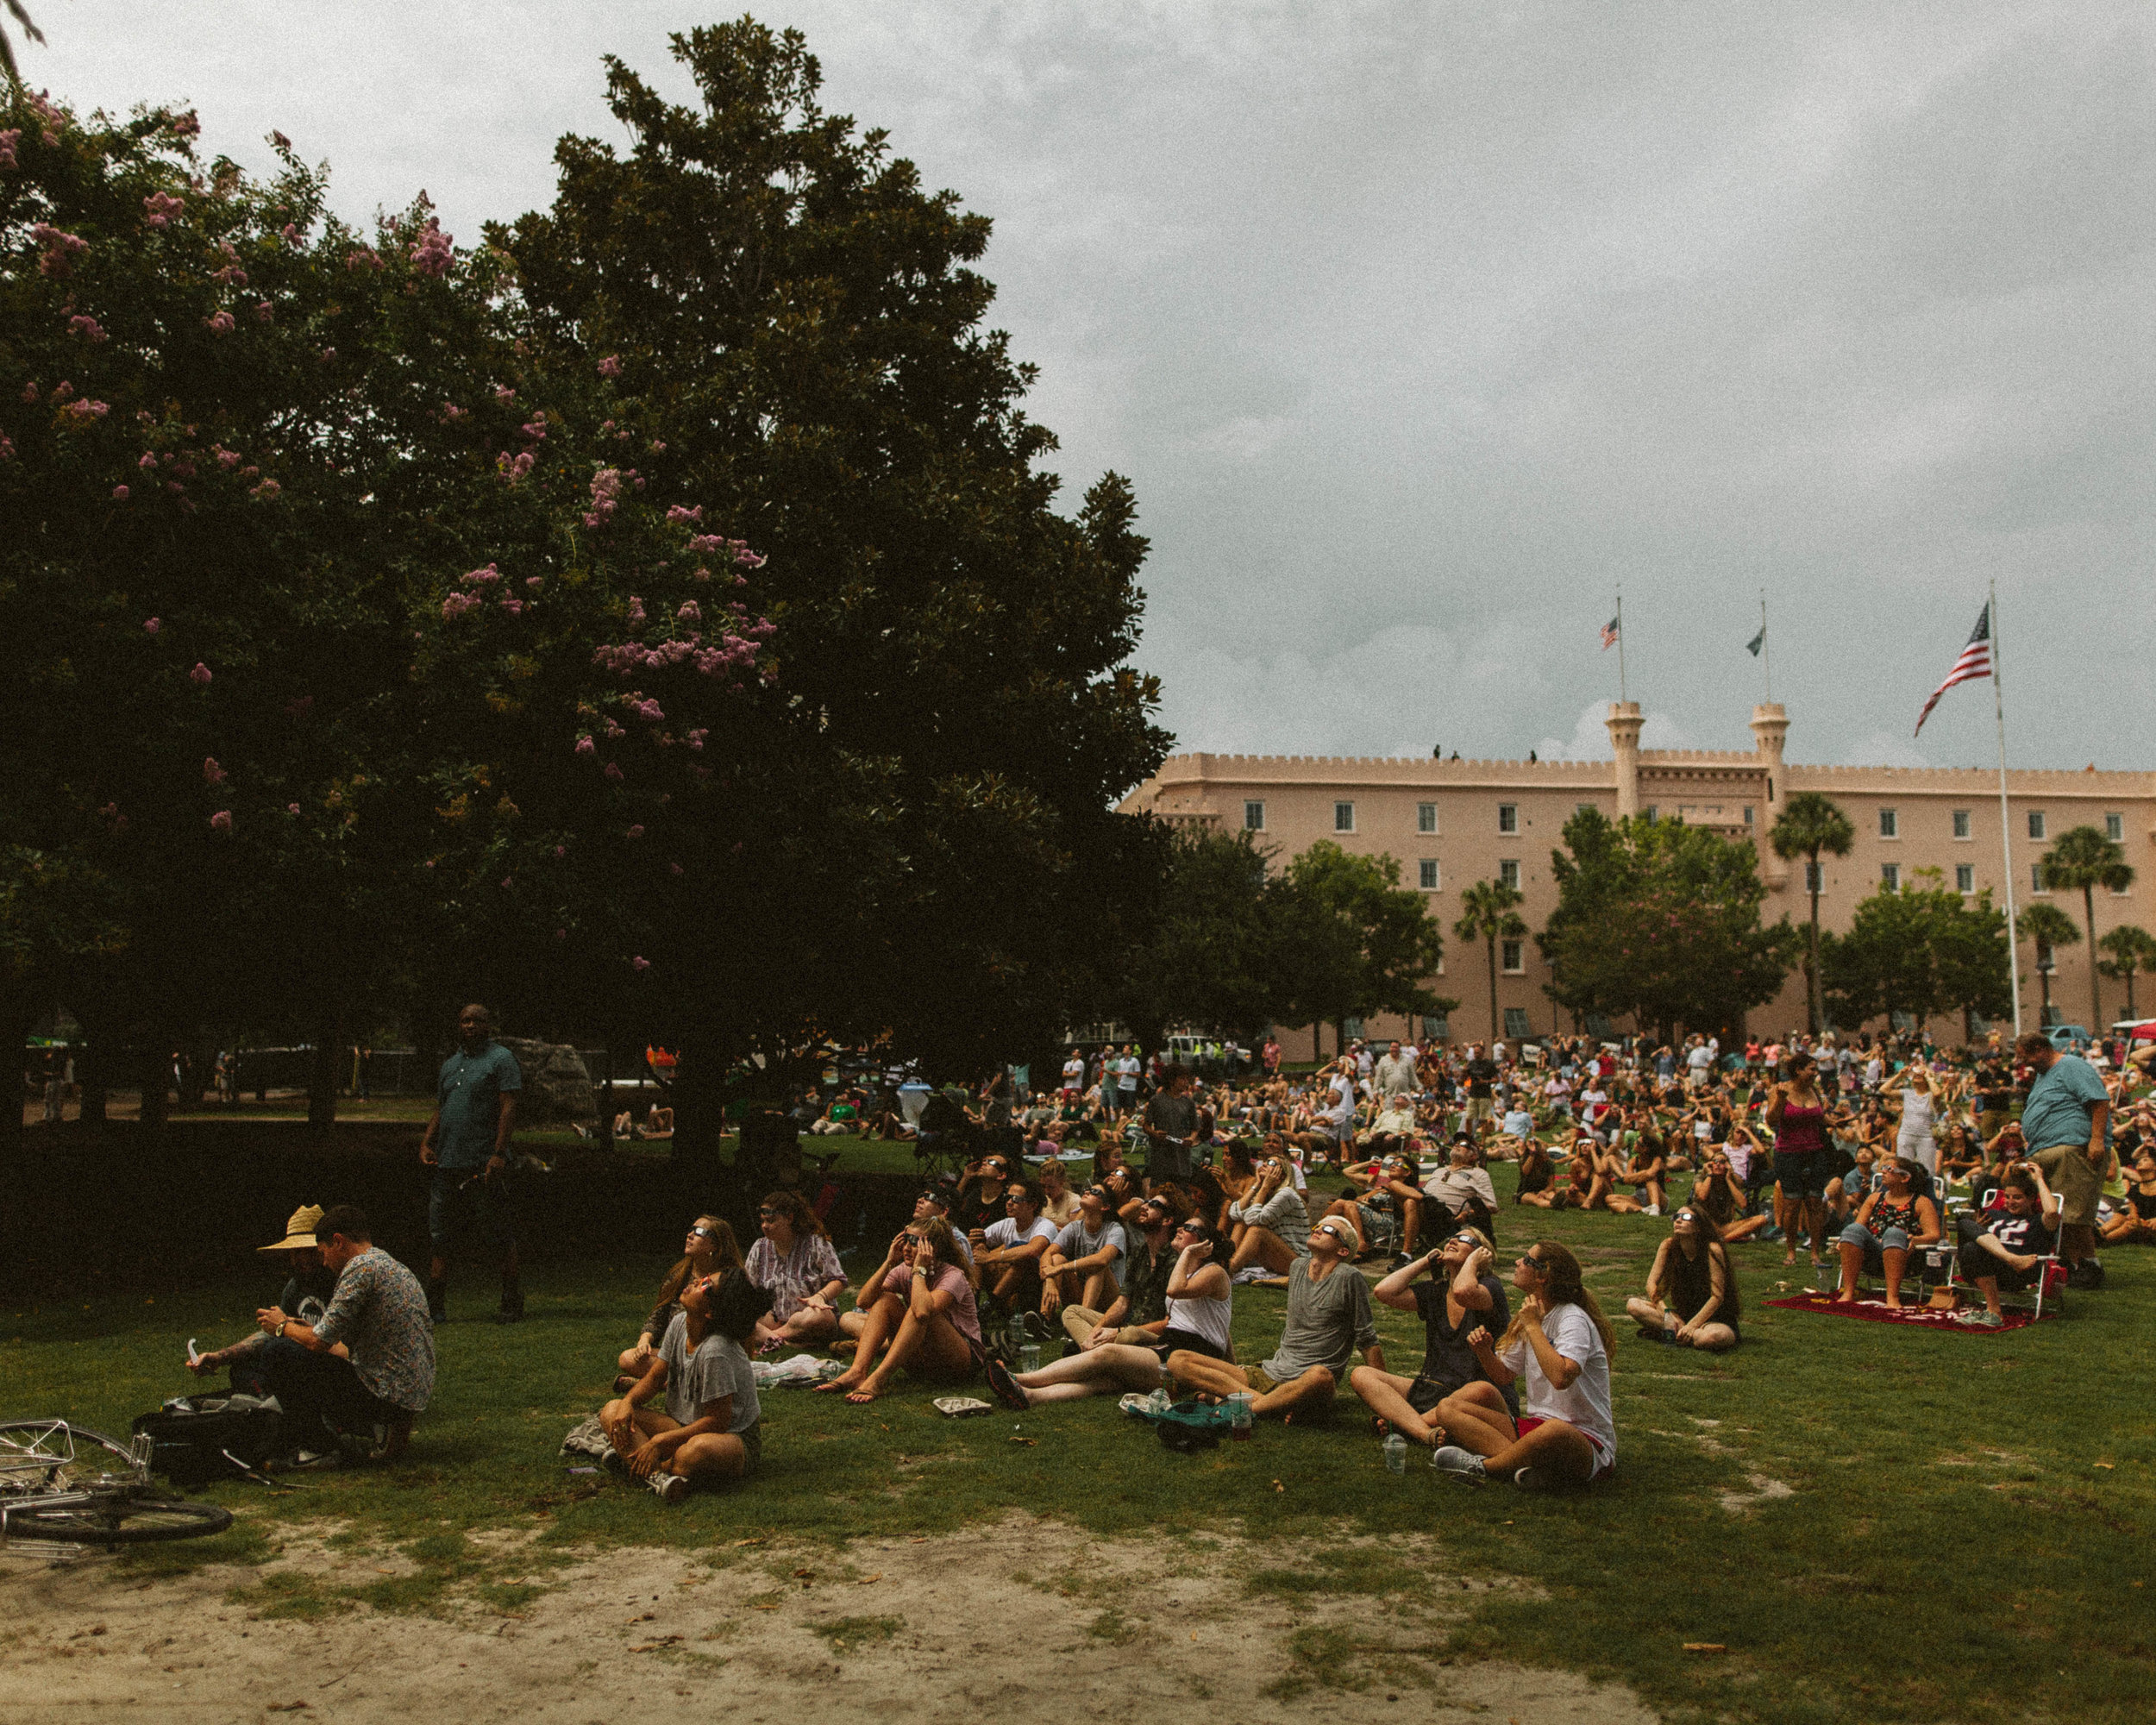 Students from University of Charleston filled Battery Park. -